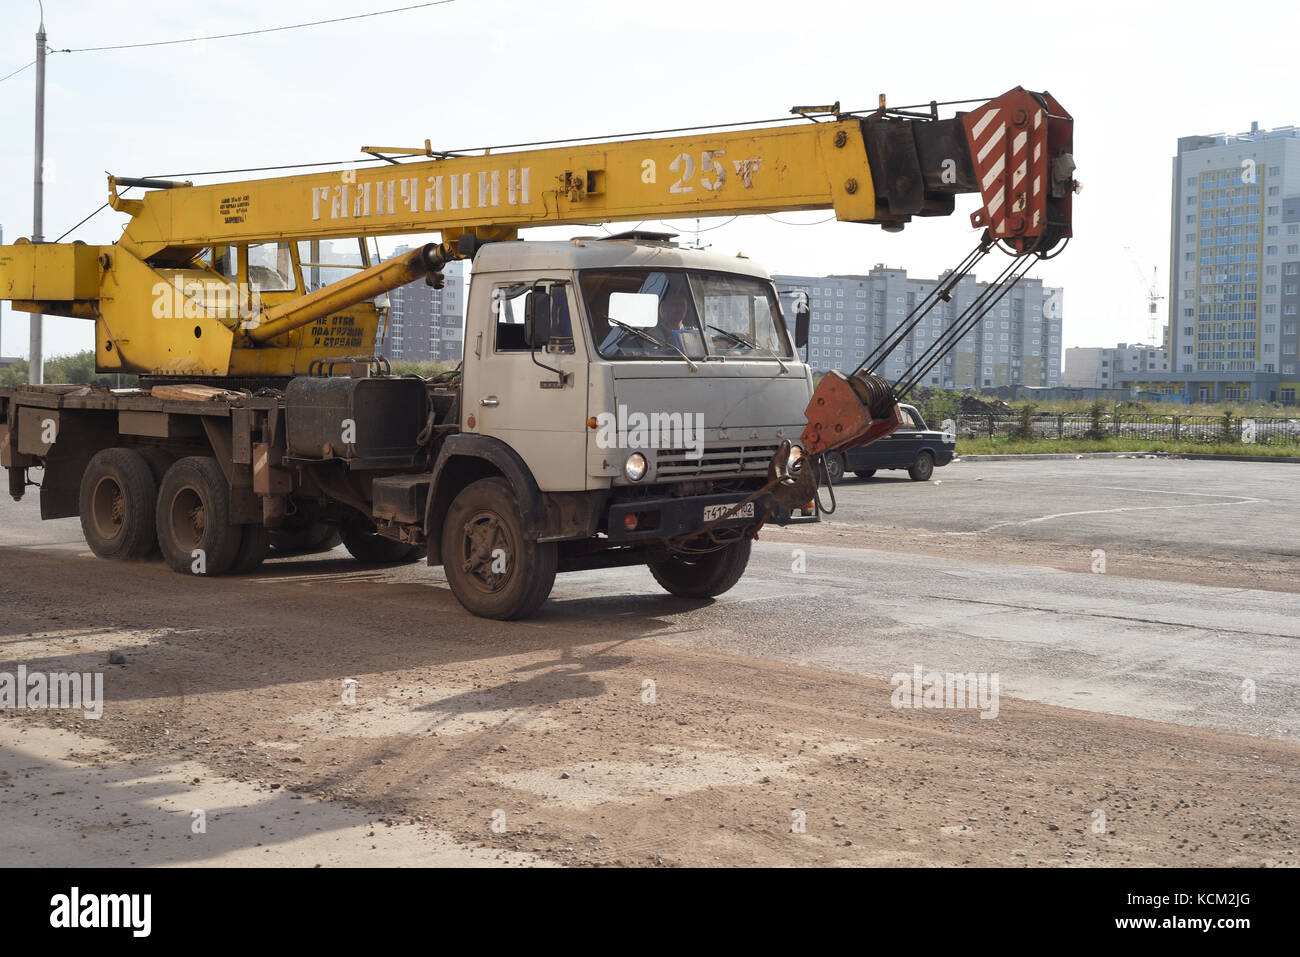 Old aged Kamaz vehicle with crane attachment moves along an empty road in Russia - Stock Image